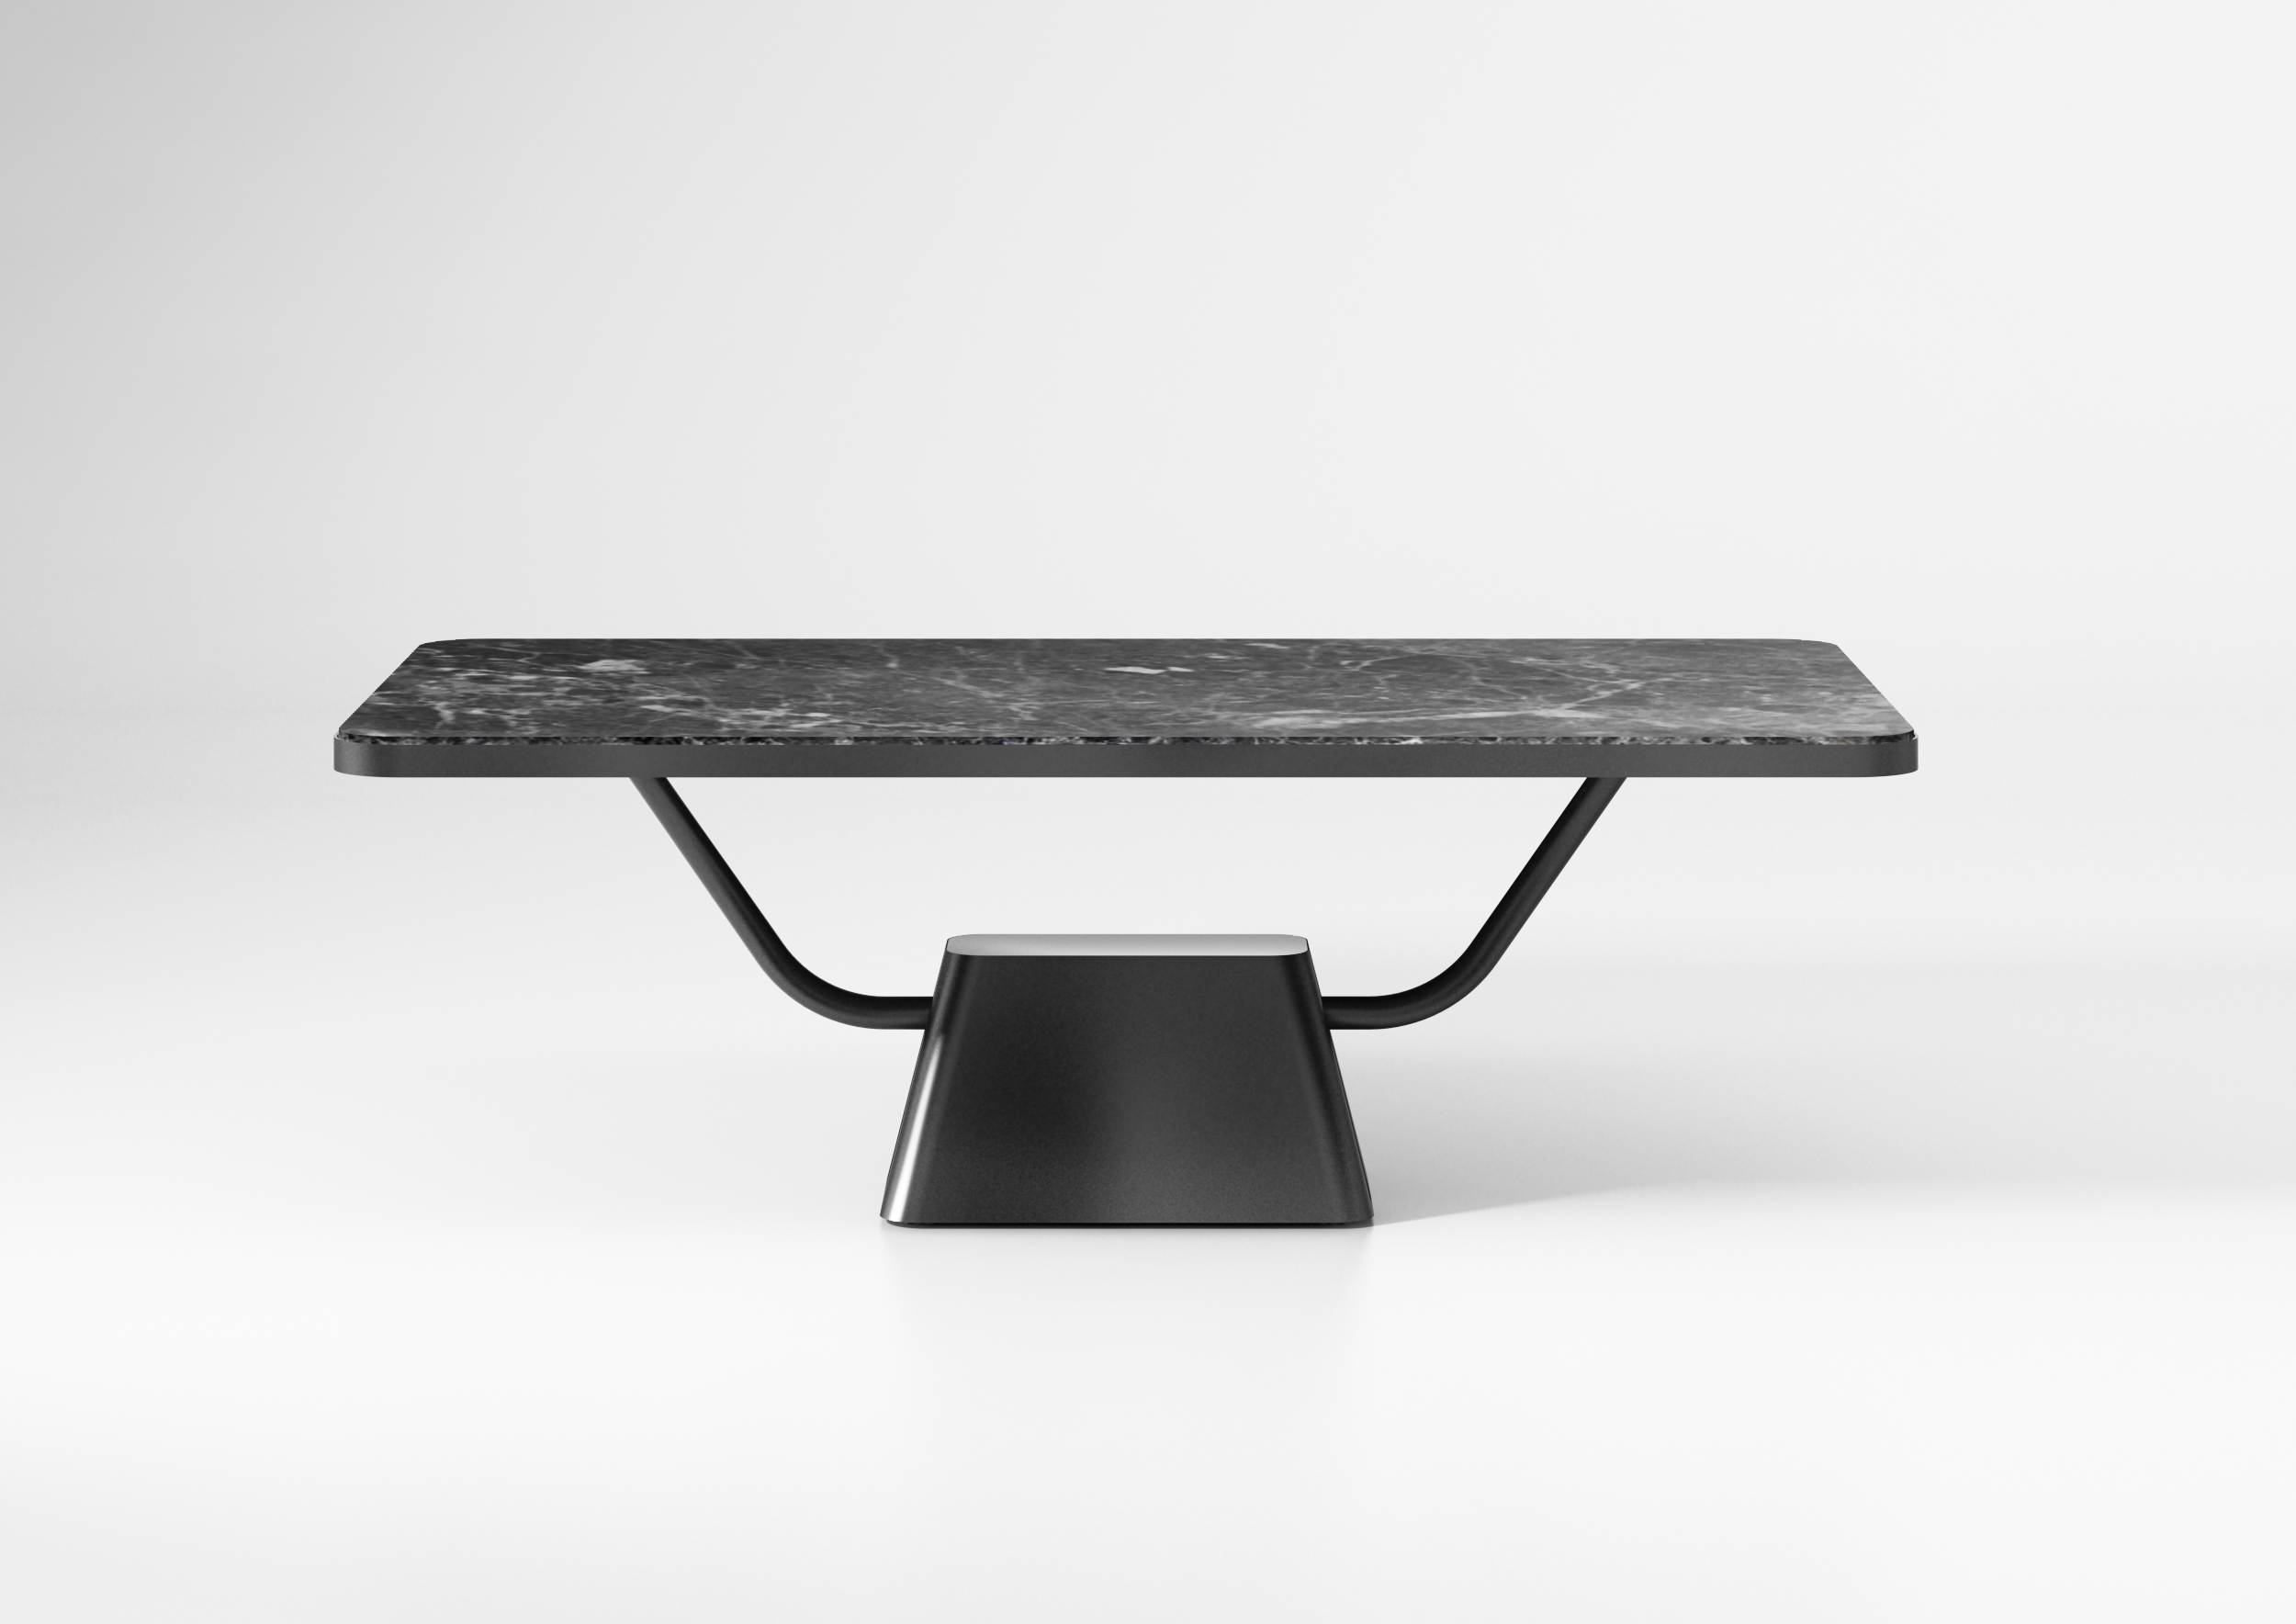 On the occasion of Maison&Objet and Paris Déco Off 2019, designer Paul Loebach designed a black marble top dining table.